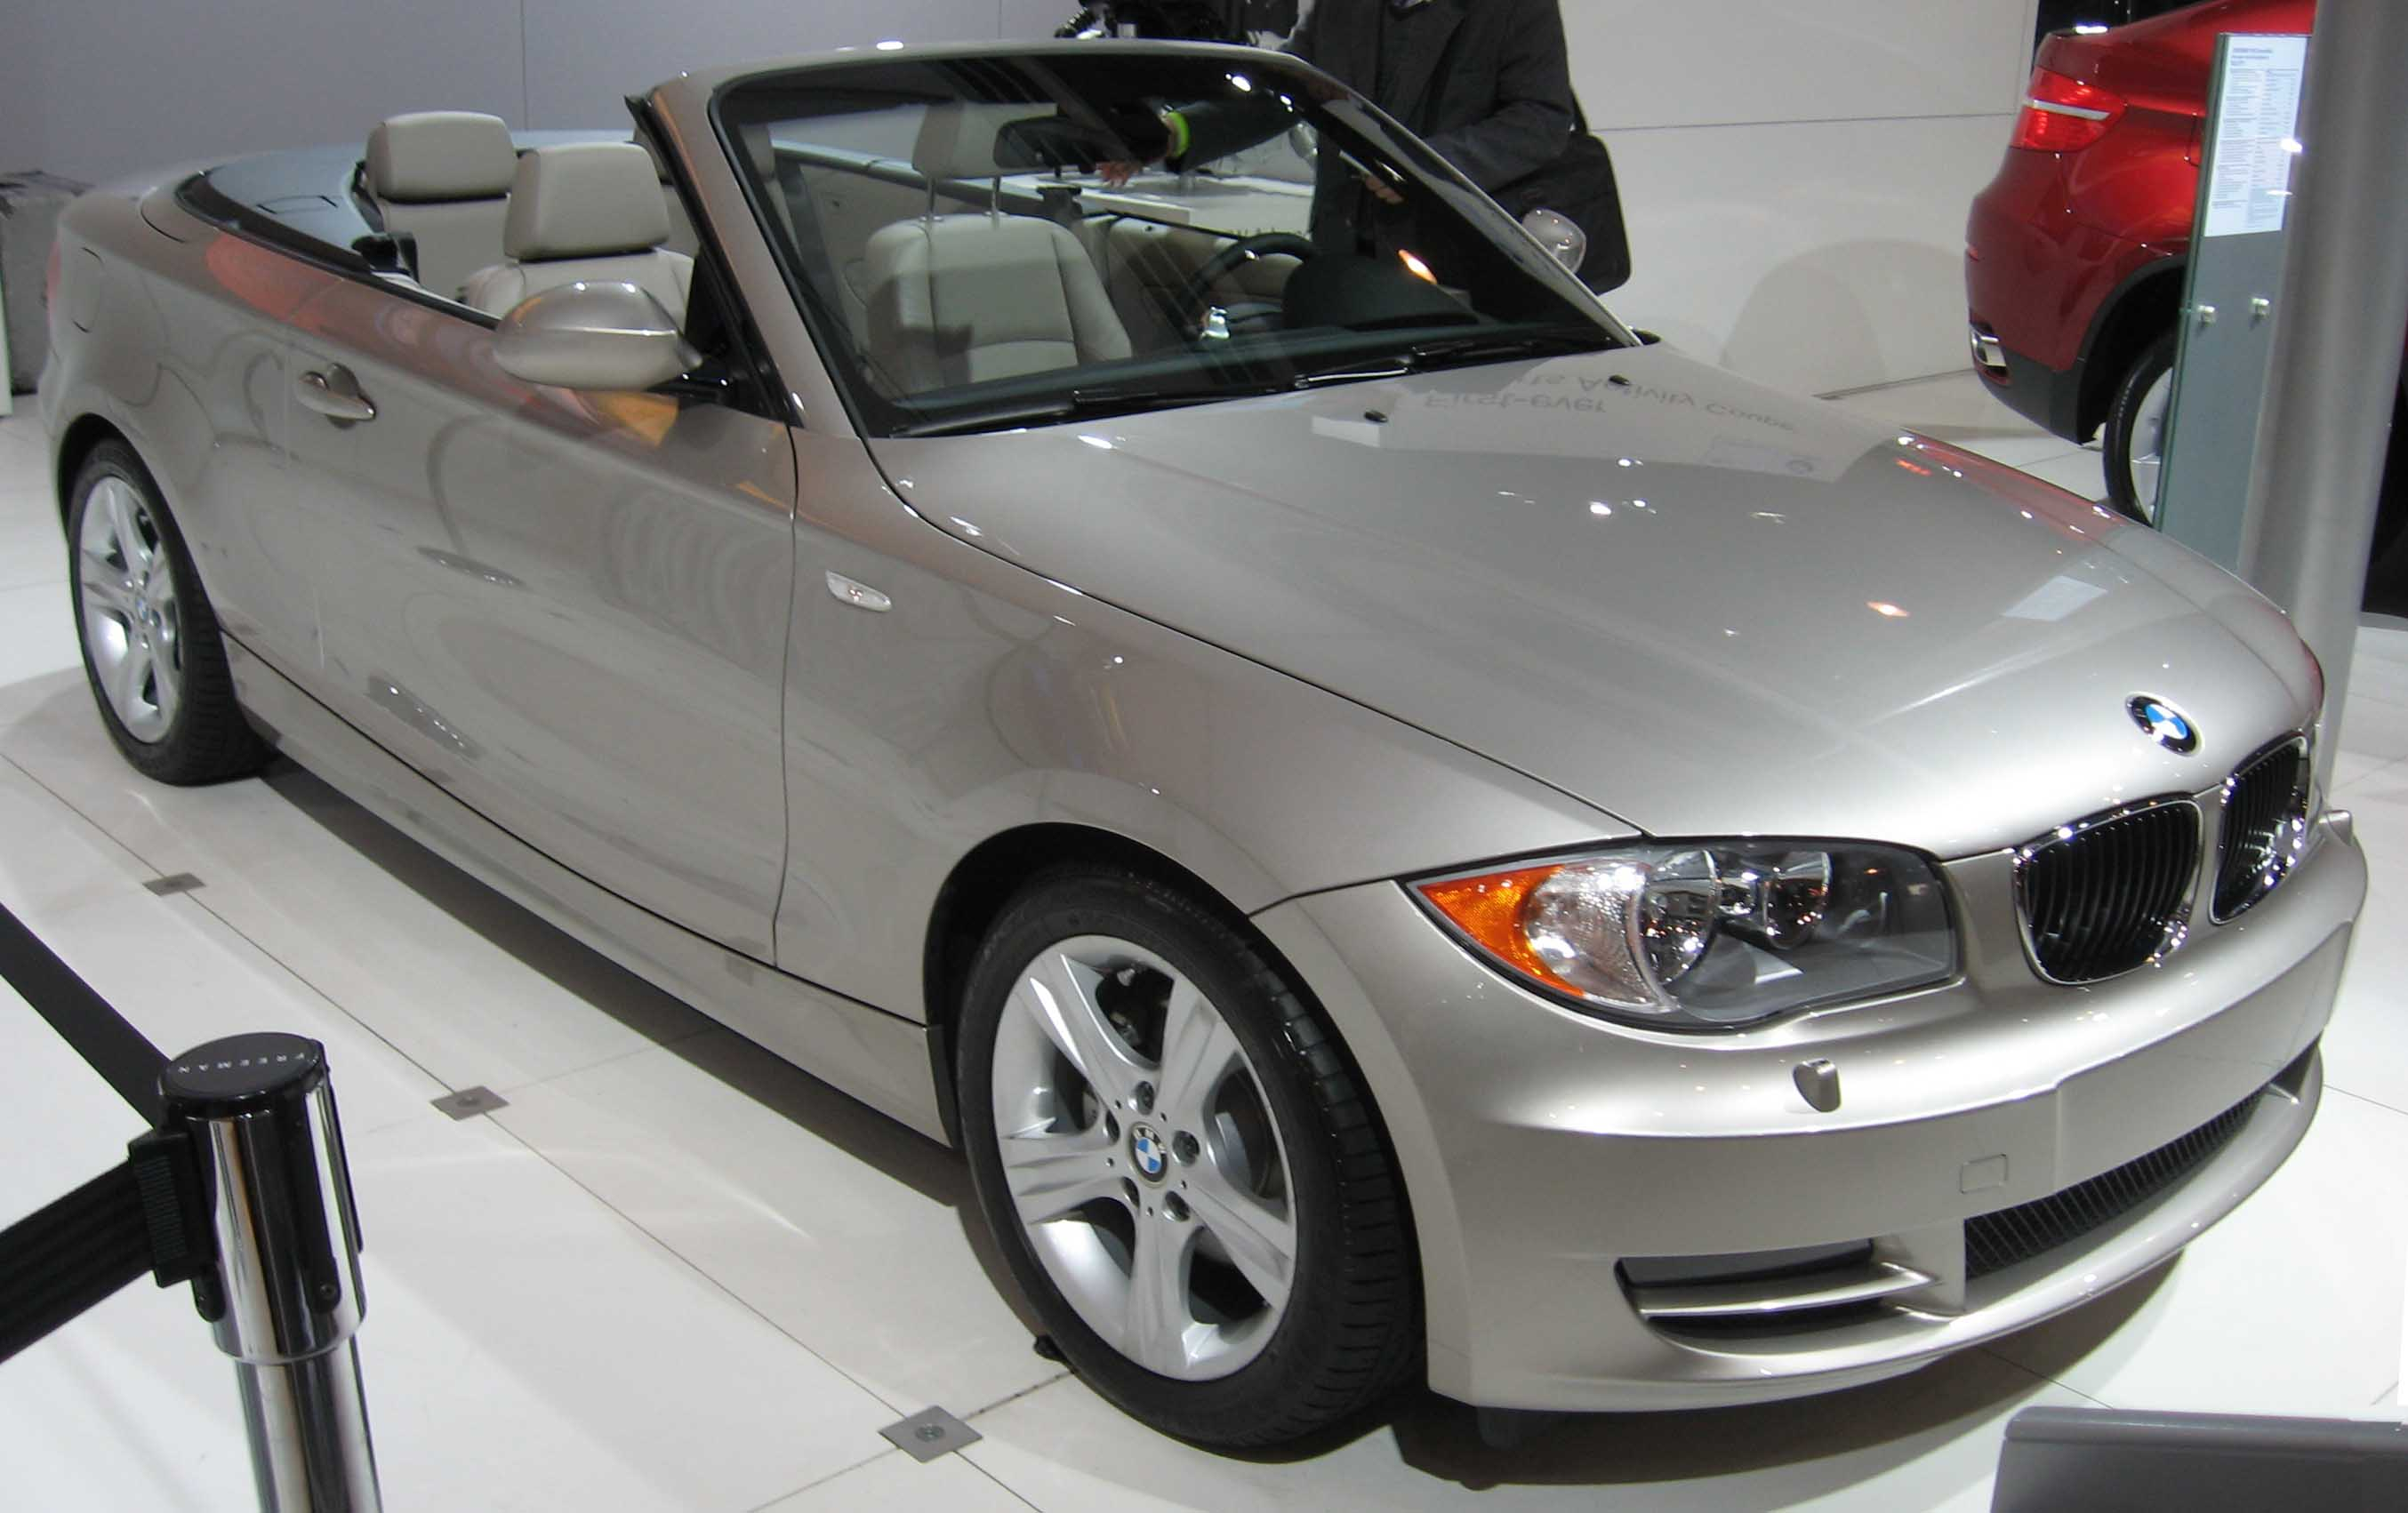 The Bmw 1 Series Convertible Accessories